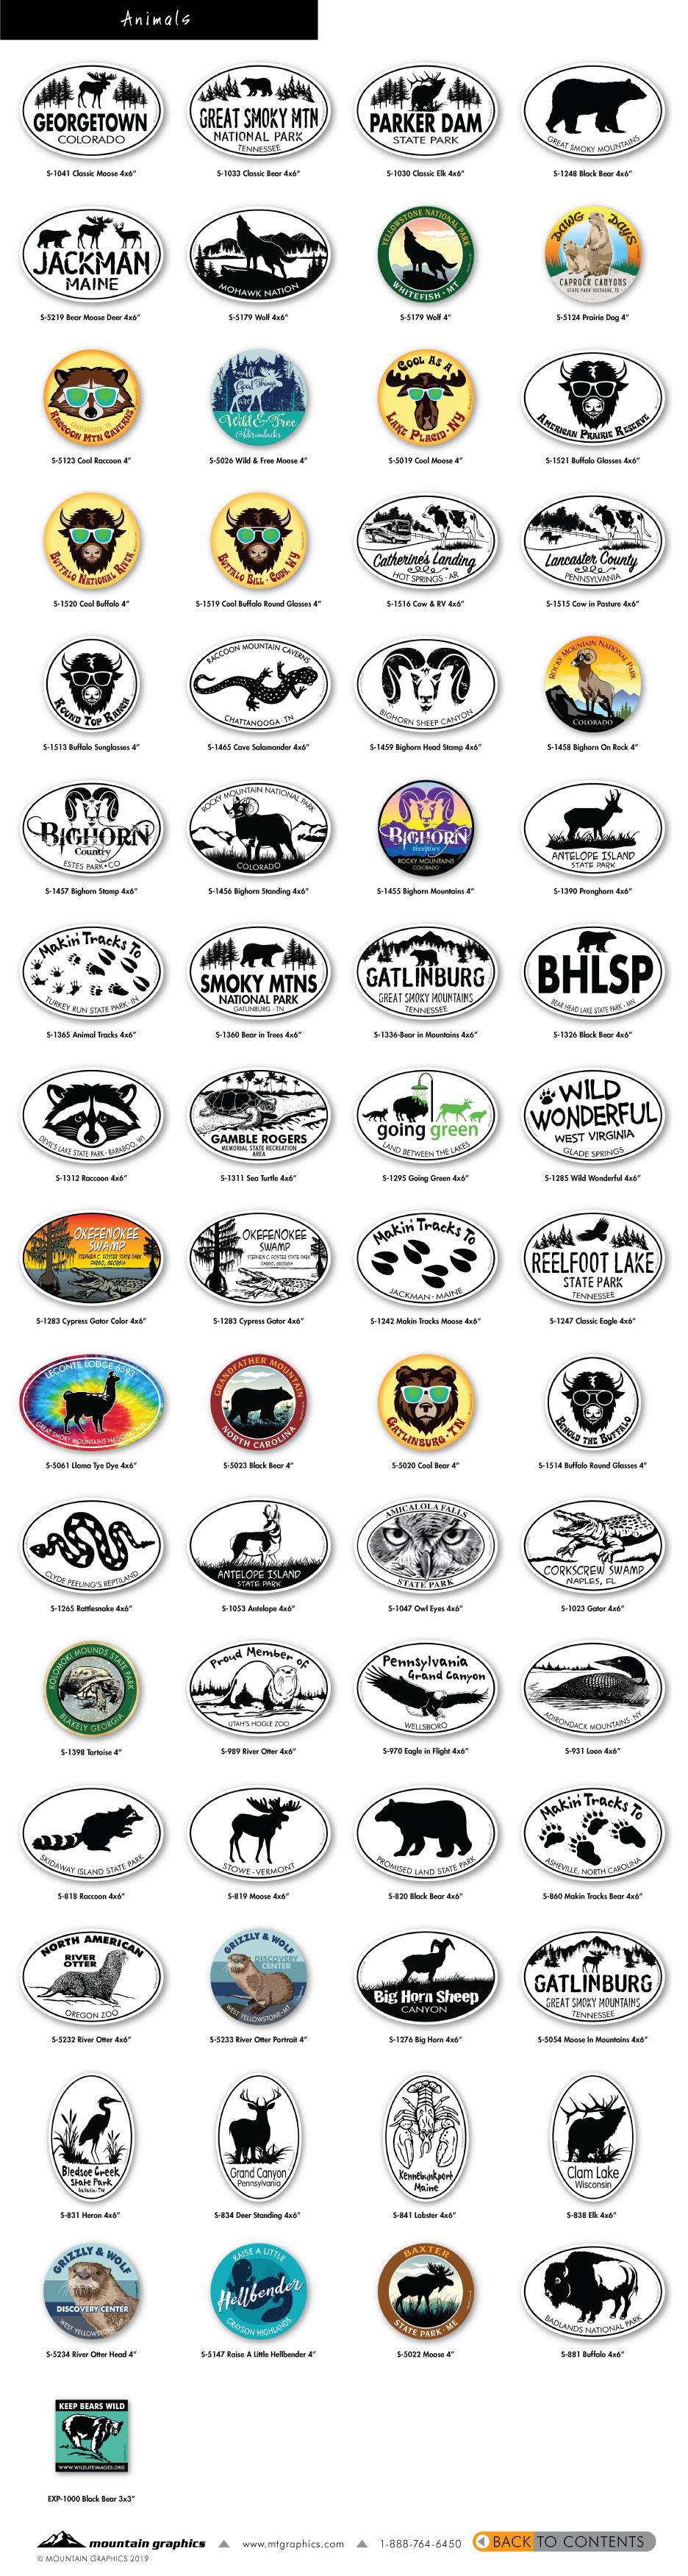 2019-digital-catalog-stickers1.jpg